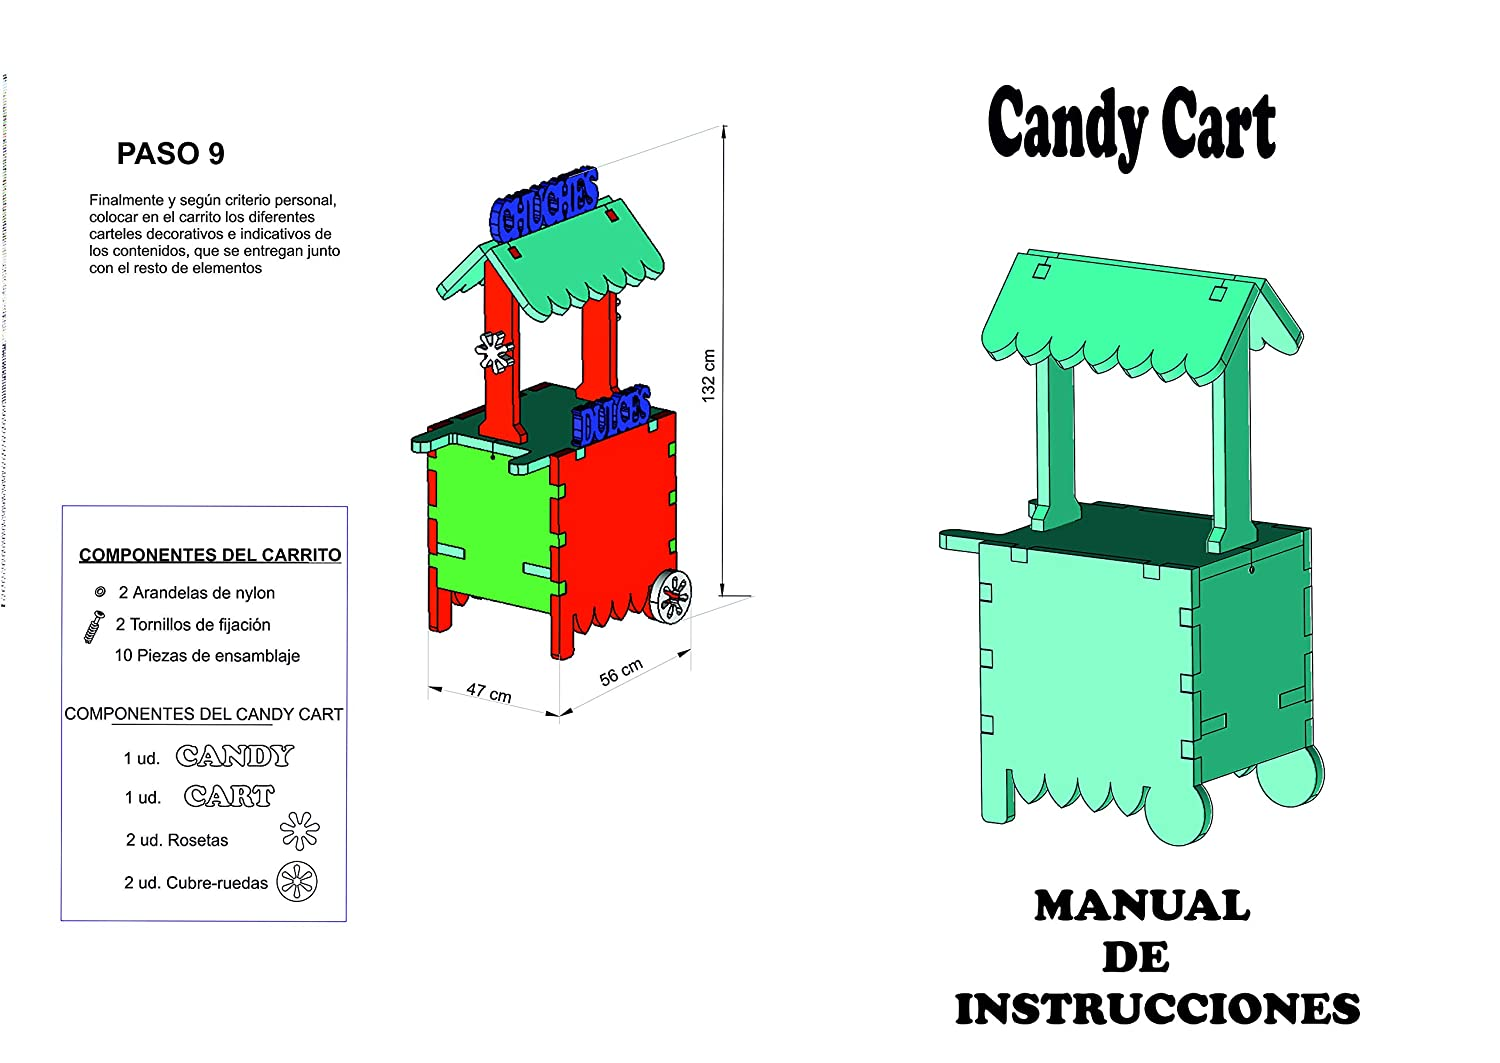 CARRITO DE CHUCHES Candy Cart Happy Birthday Azul.para Decorar.Reutilizable,Medidas 132CMS(Alto) X56CMS(Largo) X47CMS(Fondo) Fabricado en Material XPS ...